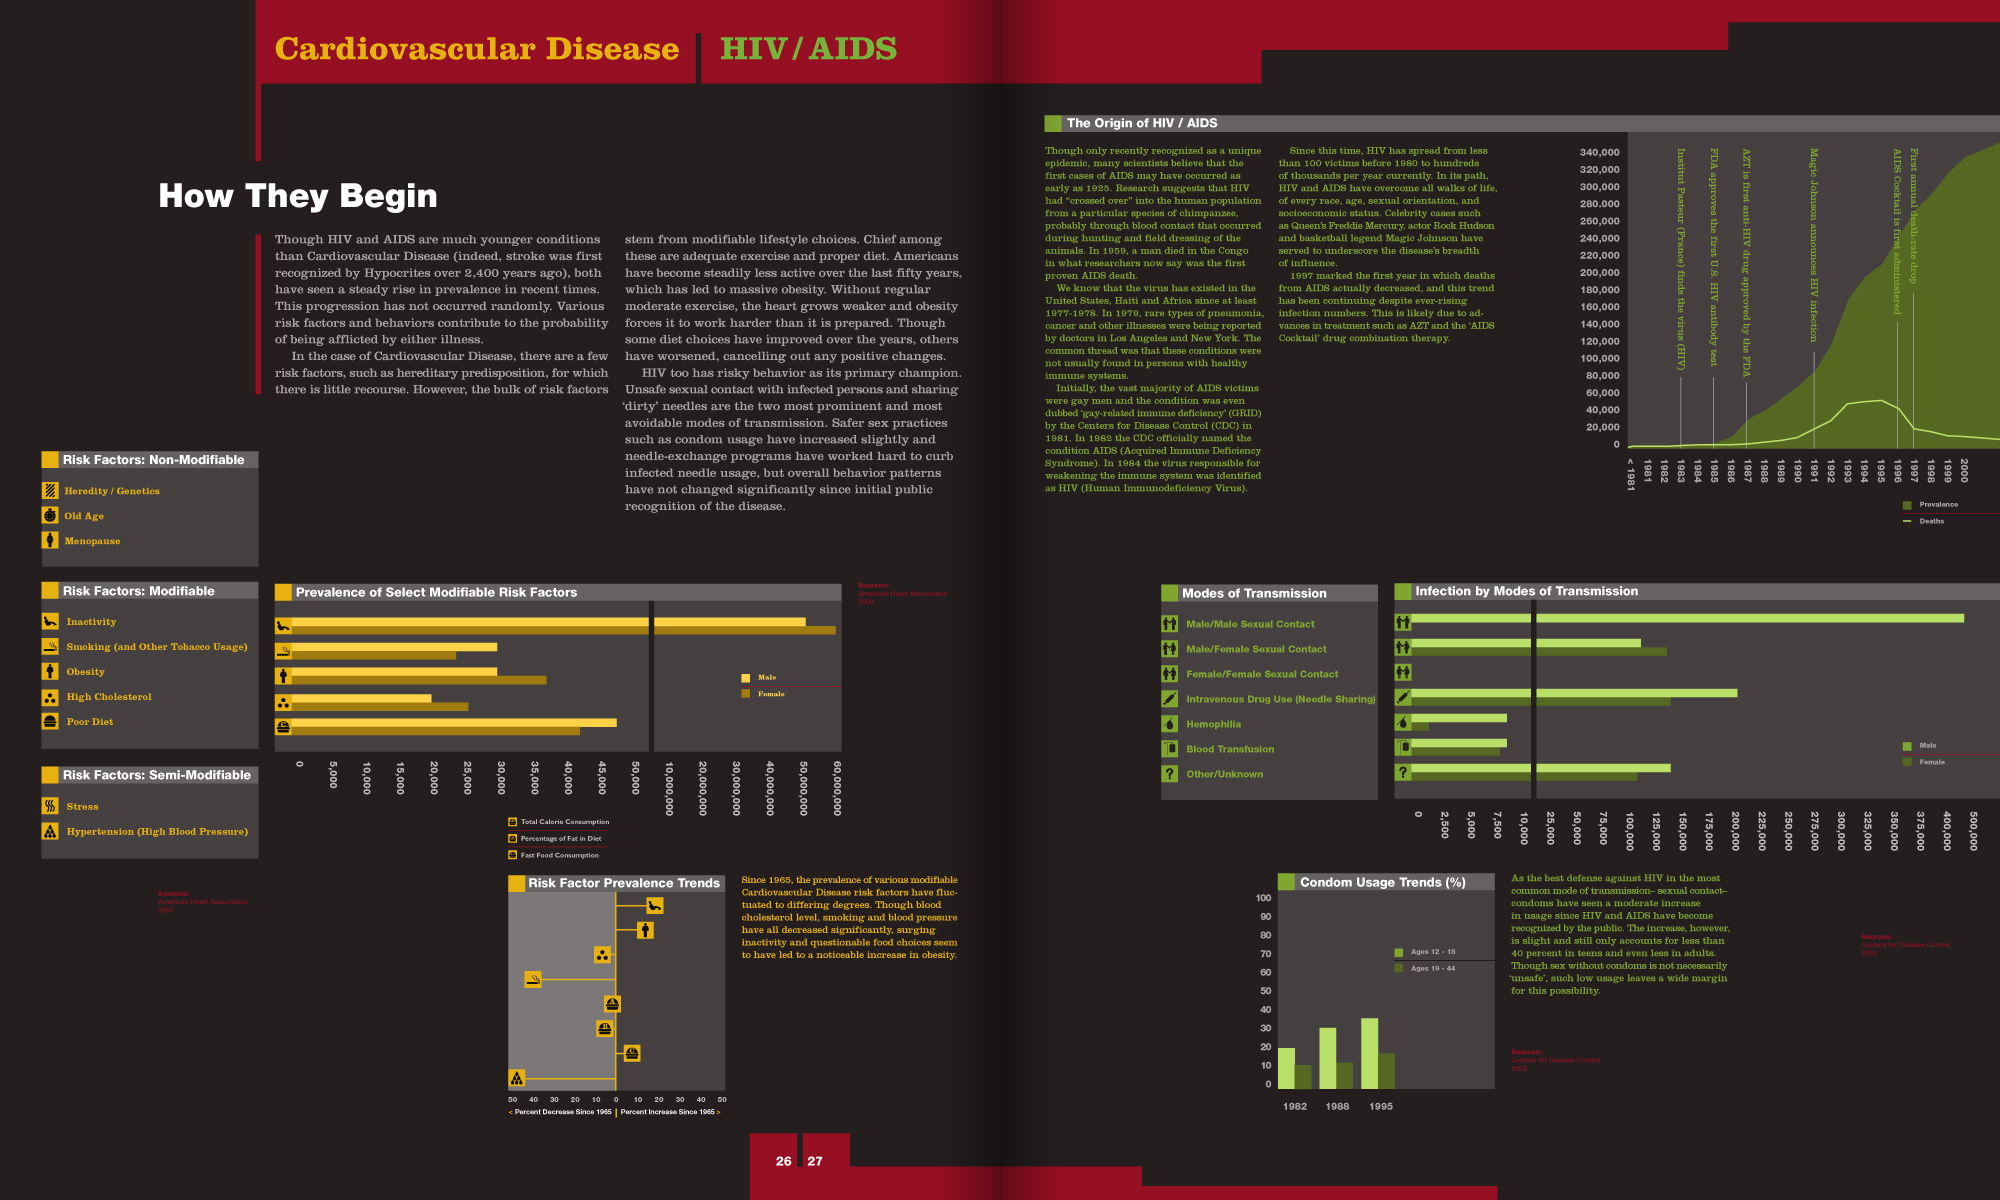 magazine article segment comparing risk factors of Cardiovascular Disease vs. HIV/AIDS